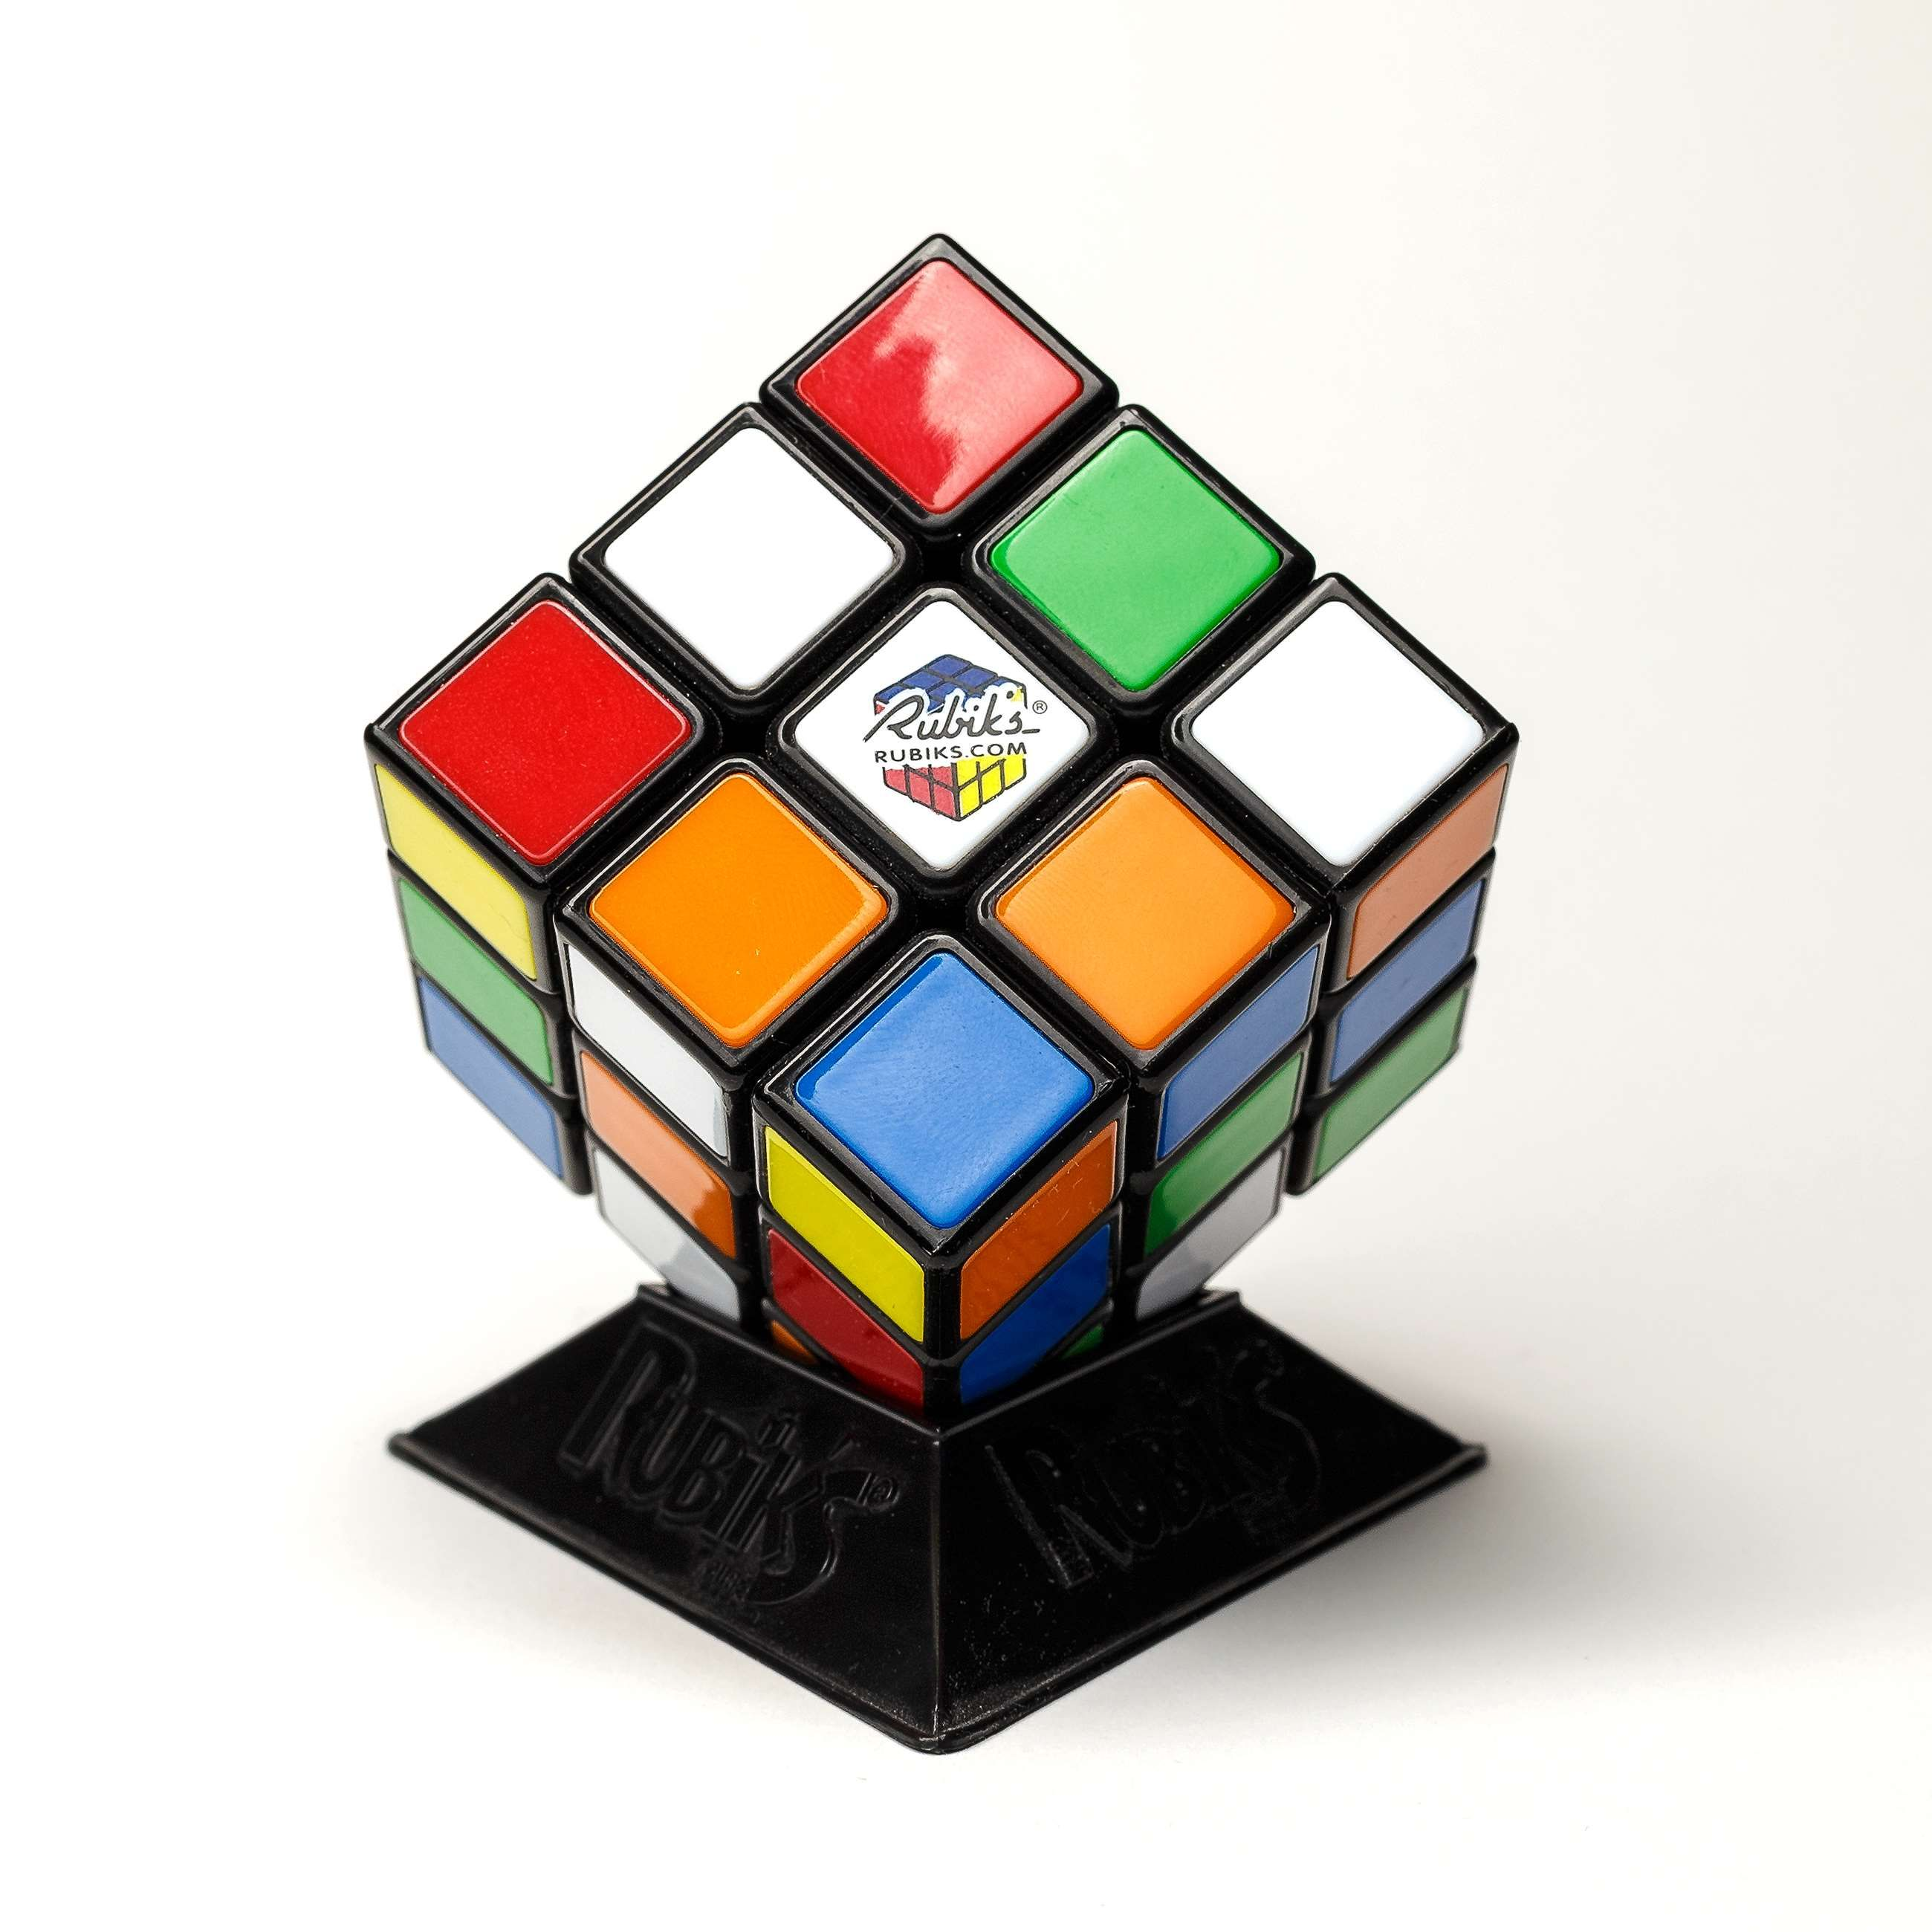 Blue Color Game Green Orange Play Red Rubik Rubiks Cube Unsolved White White Background Yellow Rubiks Cube Cube Yellow Wallpaper